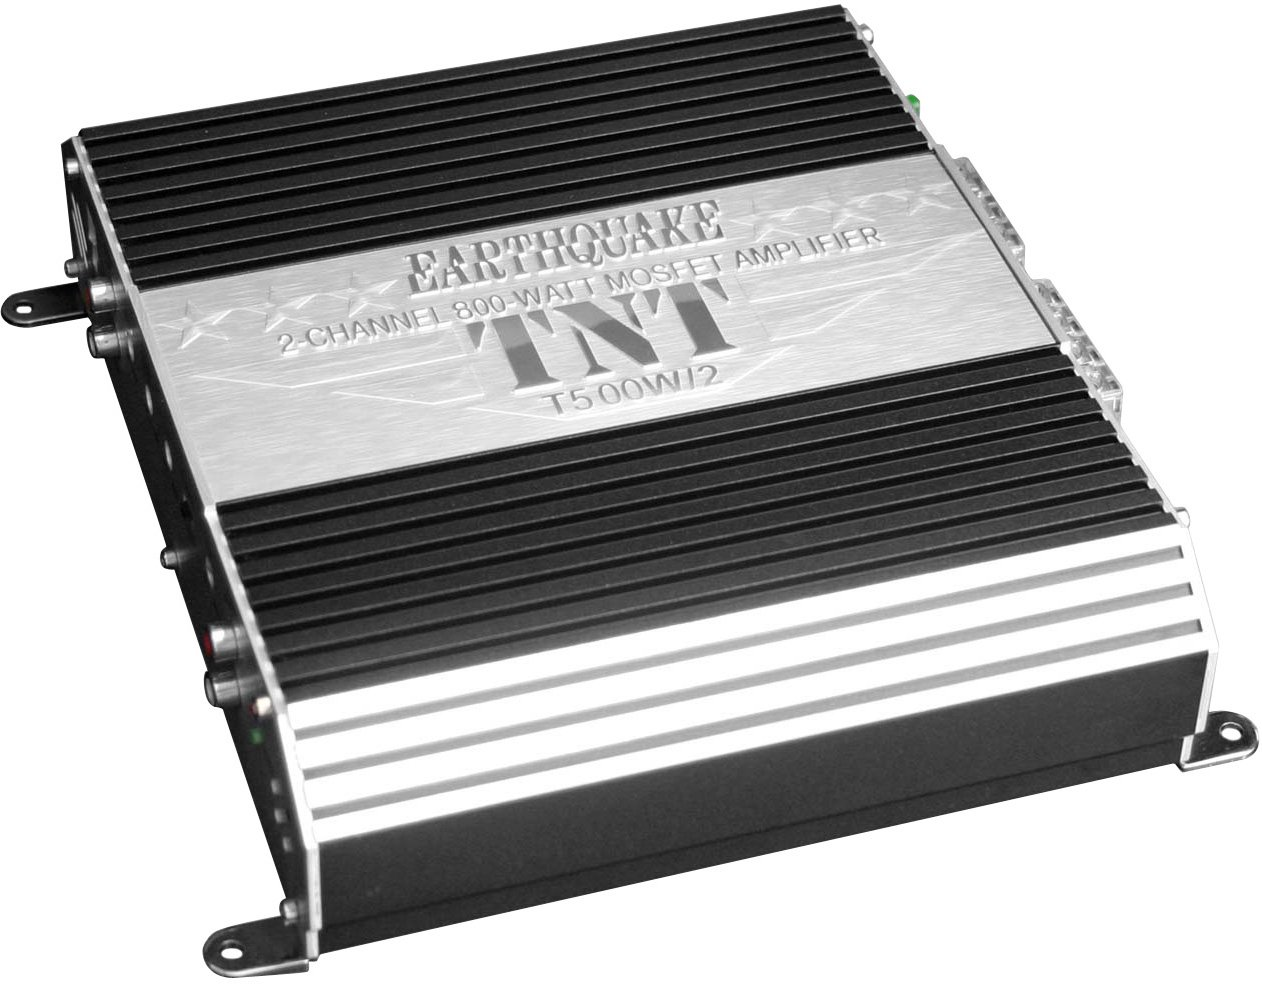 Earthquake Sound TNT Series T500W//2 2-Channel 800-Watt MOSFET Amplifier with Auto Sensing